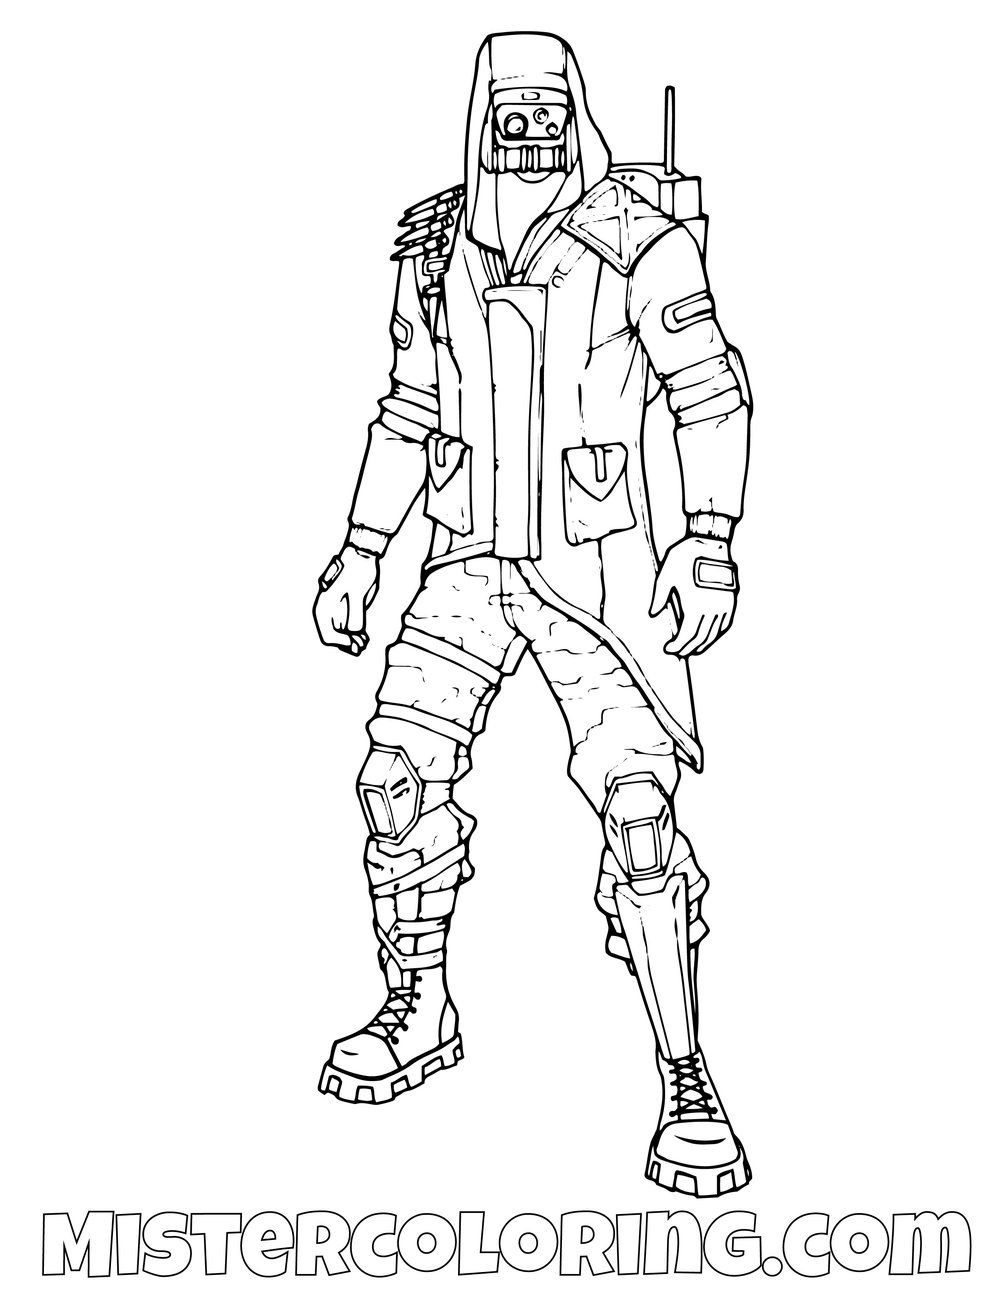 Free Insight Fortnite Coloring Page For Kids Coloring Pages